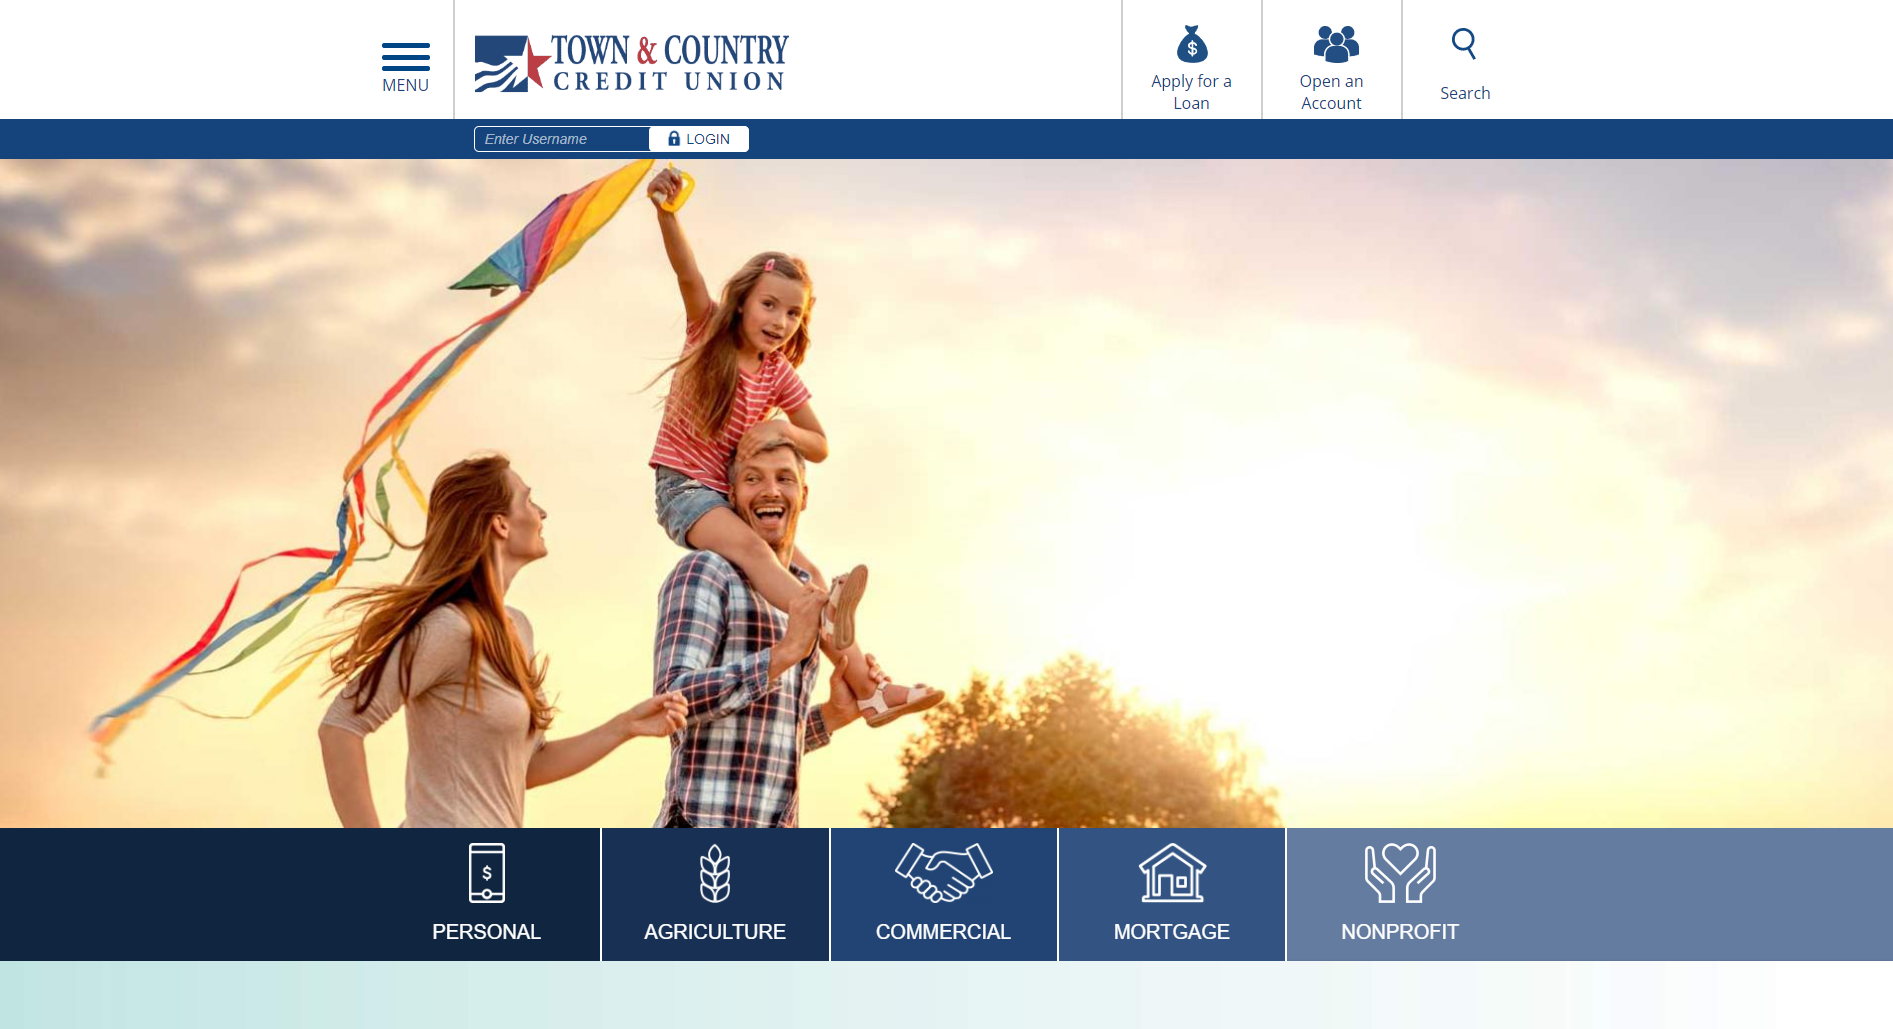 town and country credit union website homepage